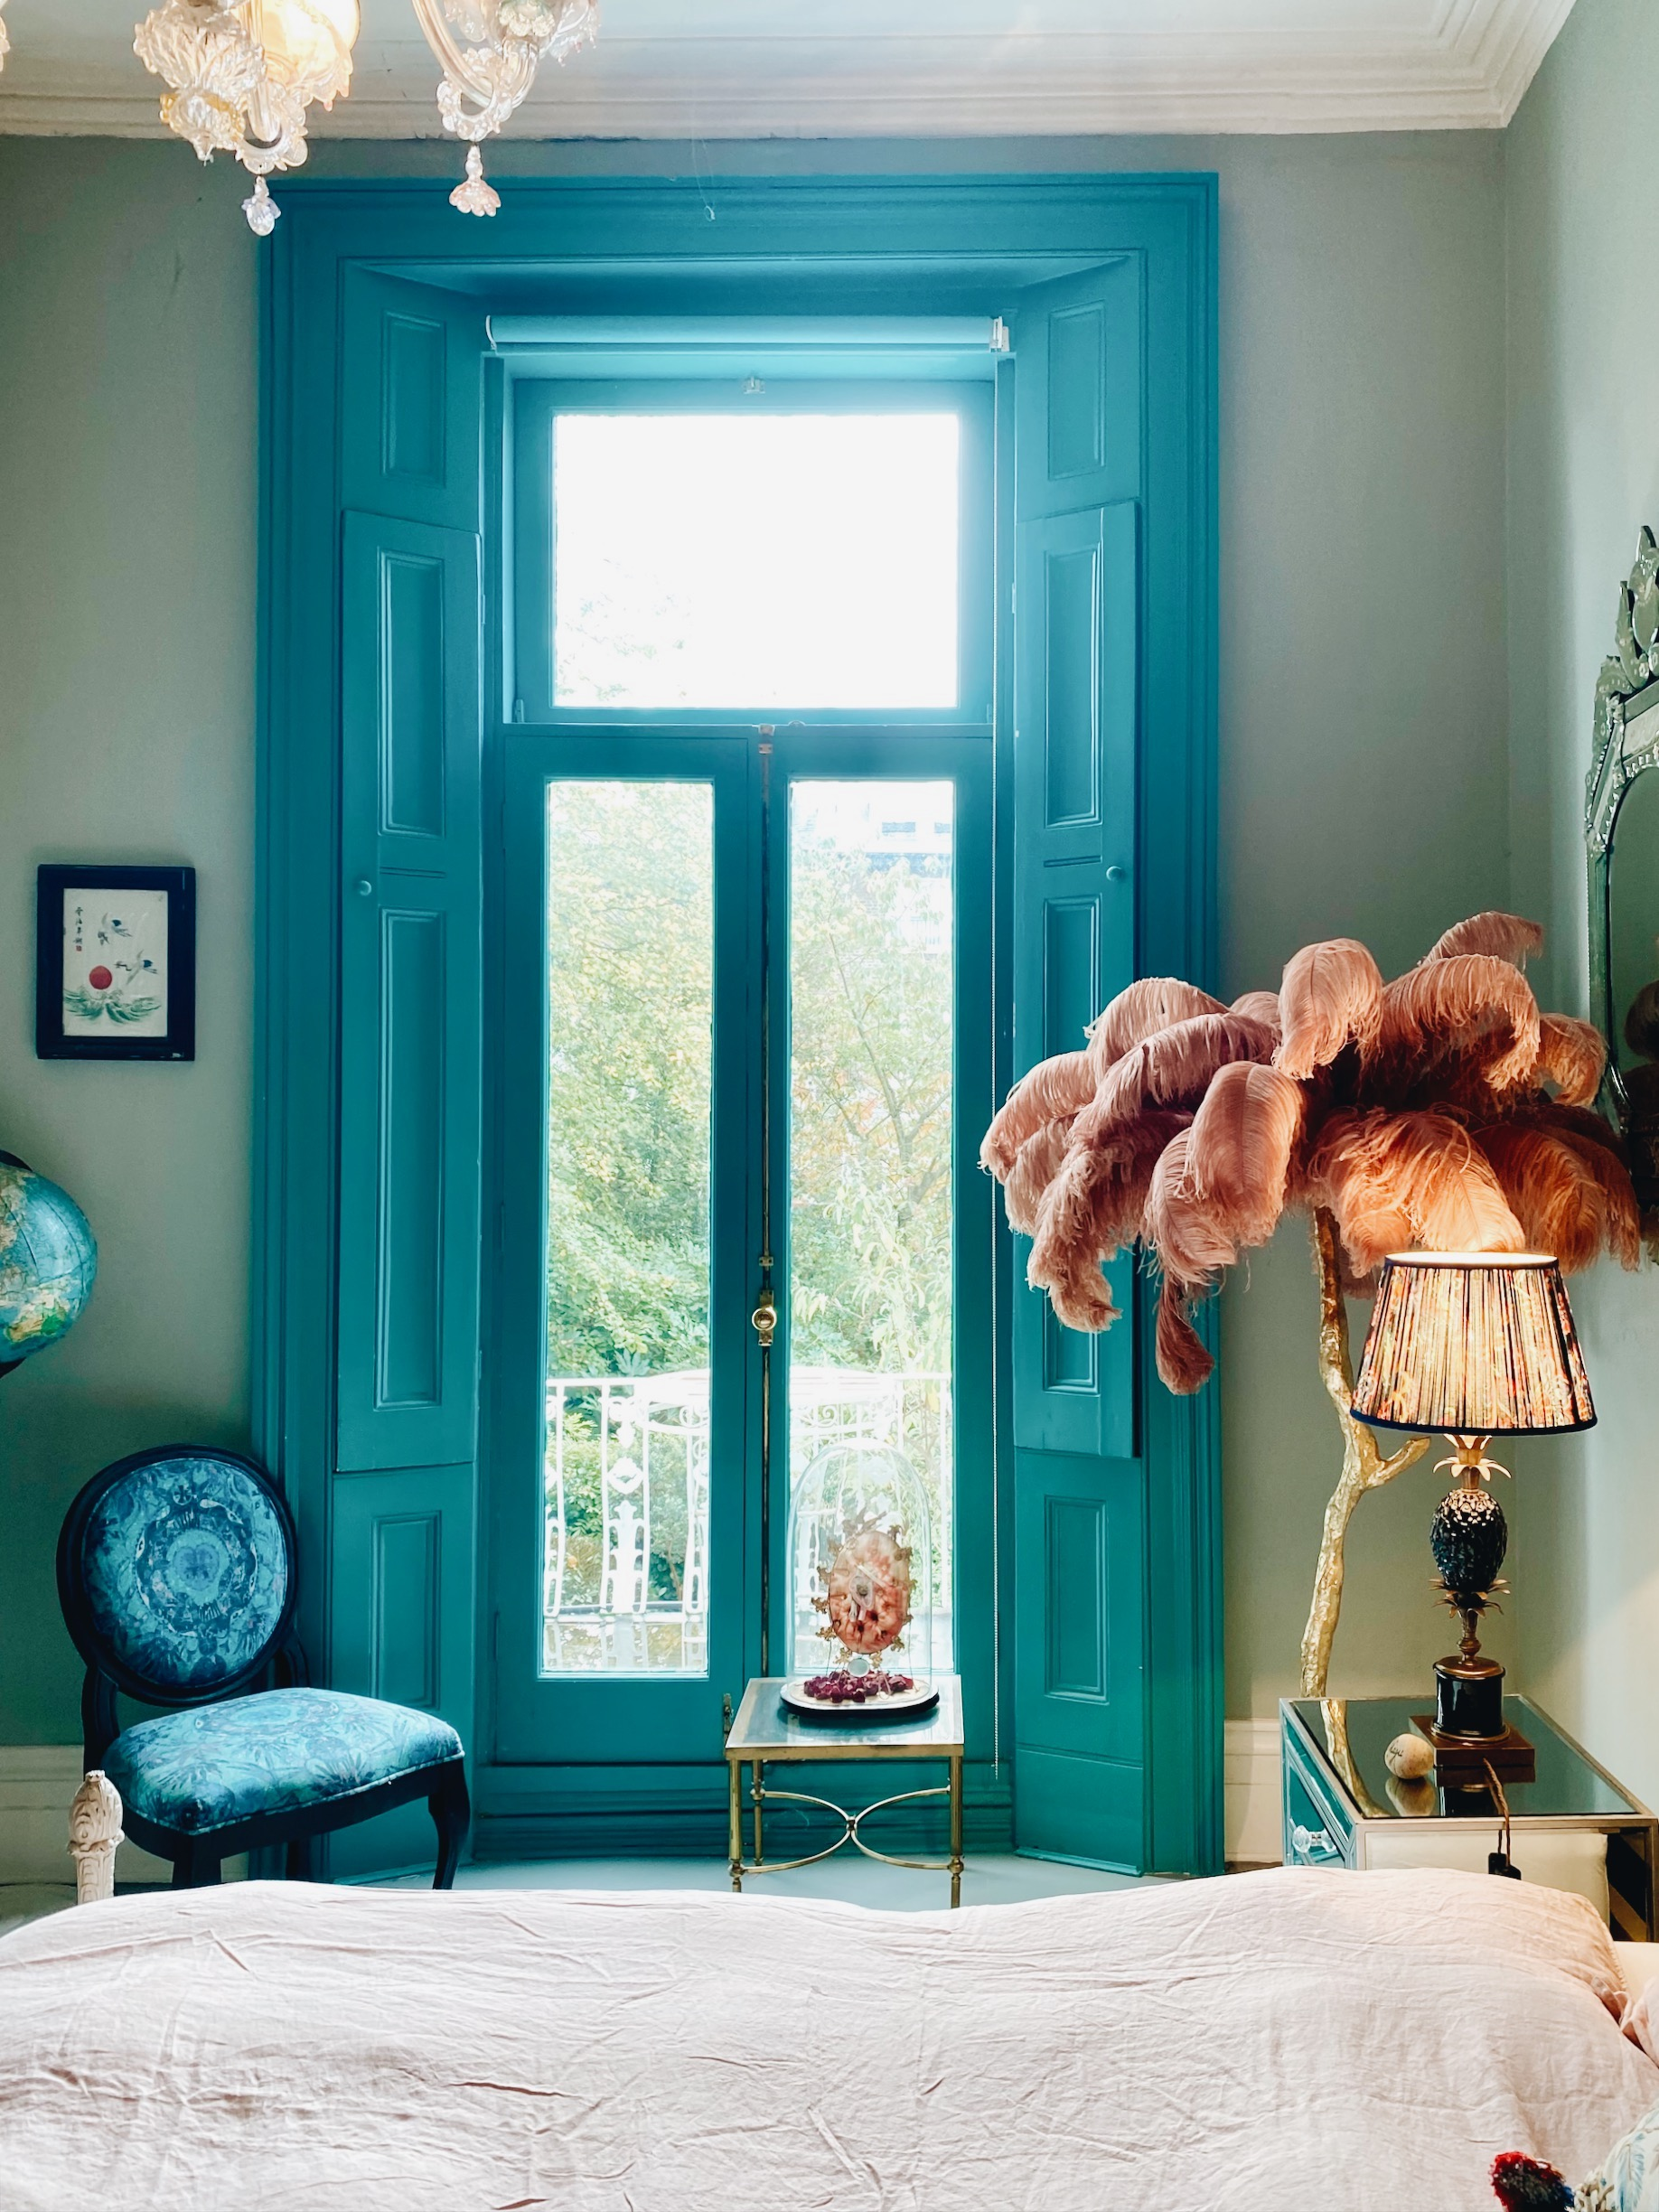 Turquoise windows at the London home of Matthew Williamson